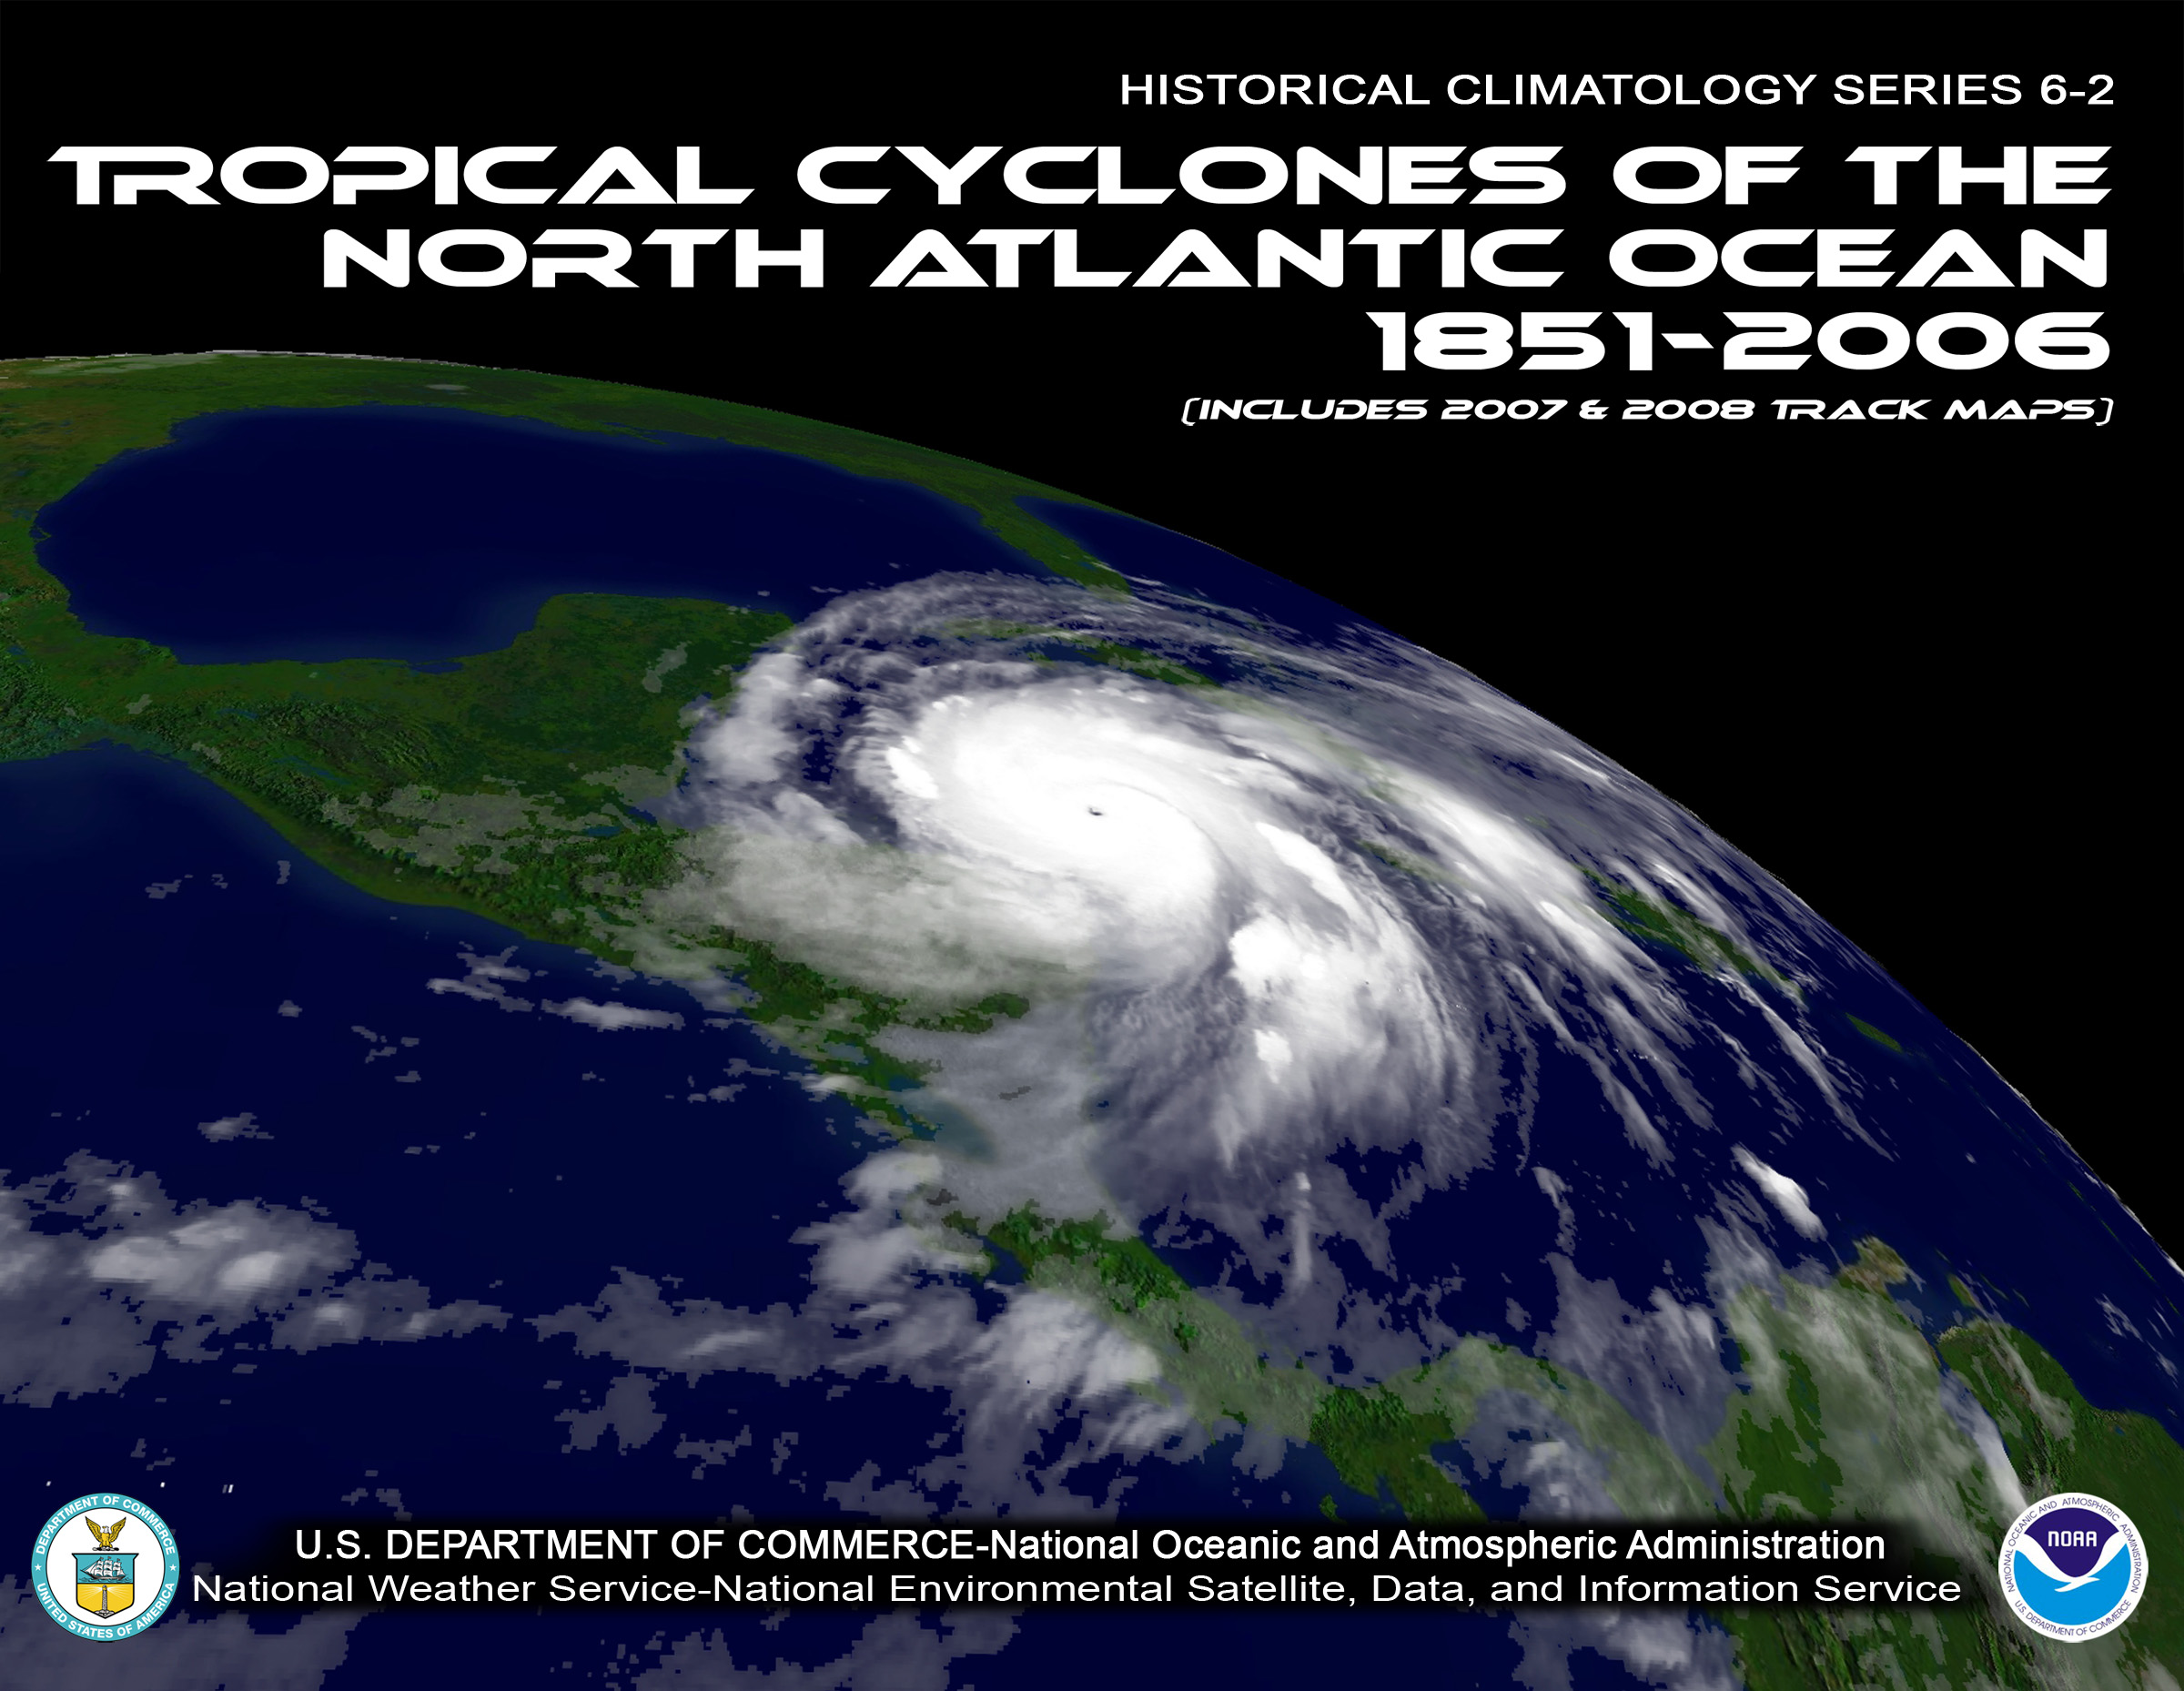 Image for Tropical Cyclones of the North Atlantic Ocean, 1851 - 2006 (HCS 6-2, UPDATE)